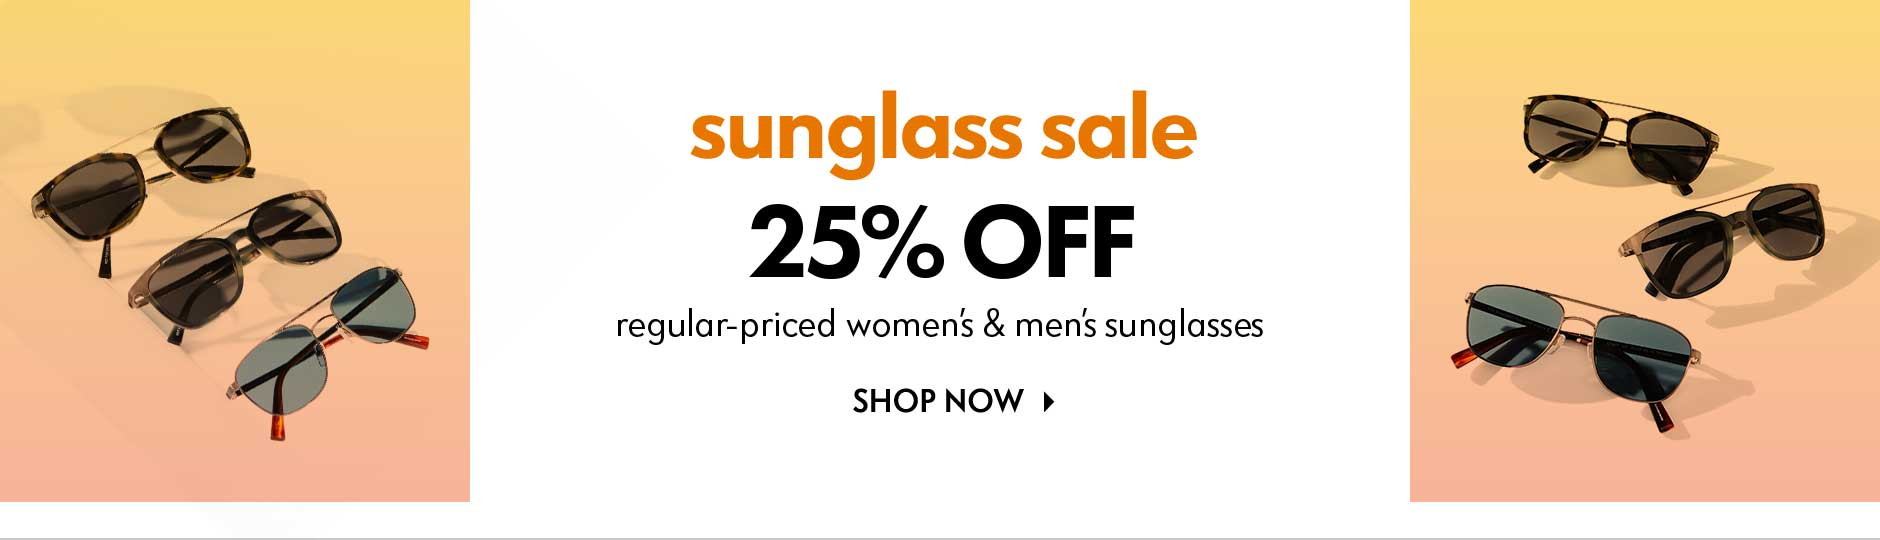 sunglass sale - 25% off regular-priced womens & mens sunglasses - shop now